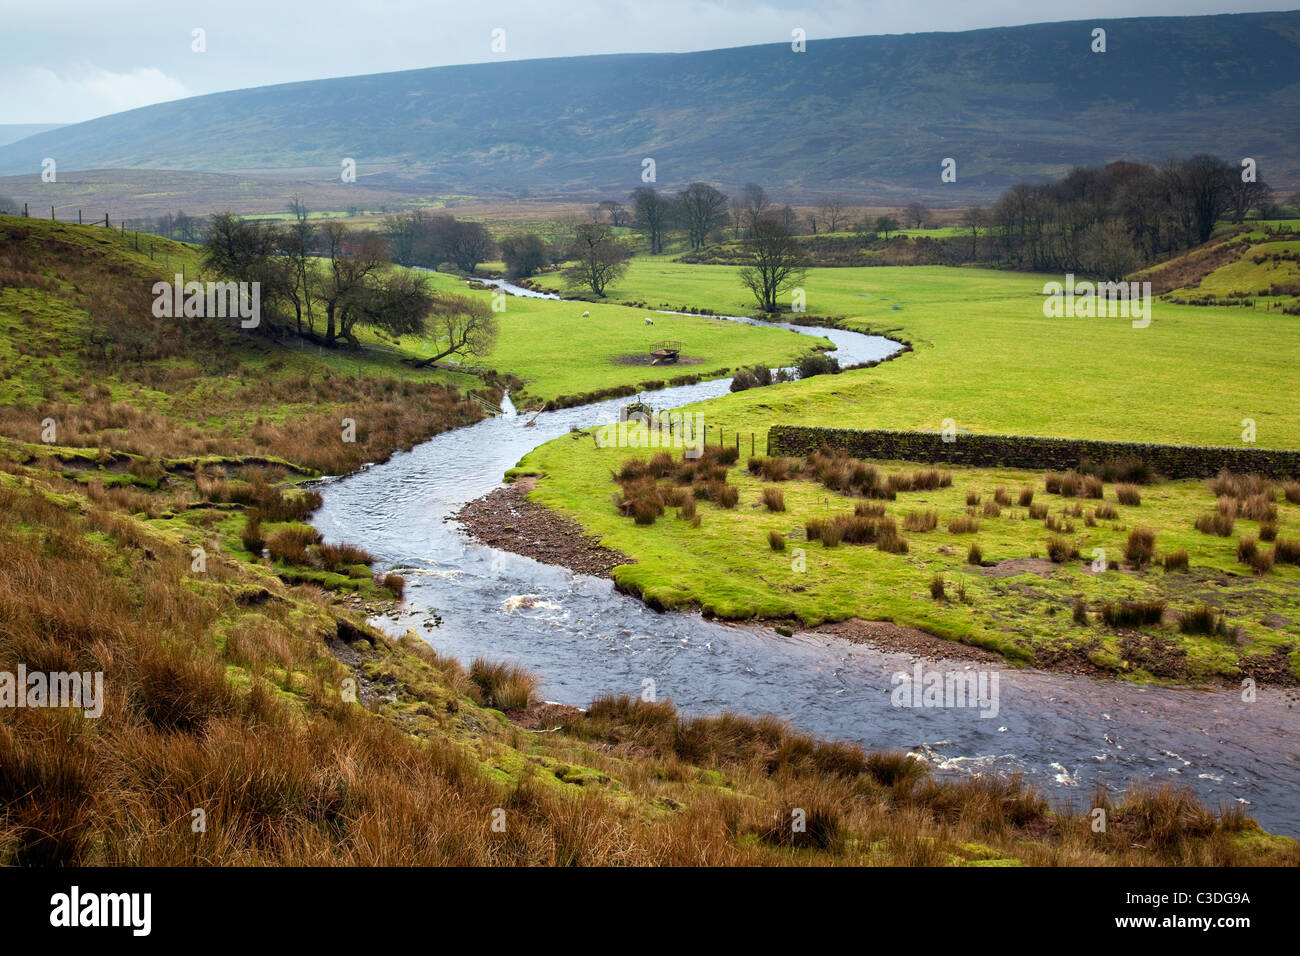 The River Wyre flowing through the Forest of Bowland, Lancashire - Stock Image